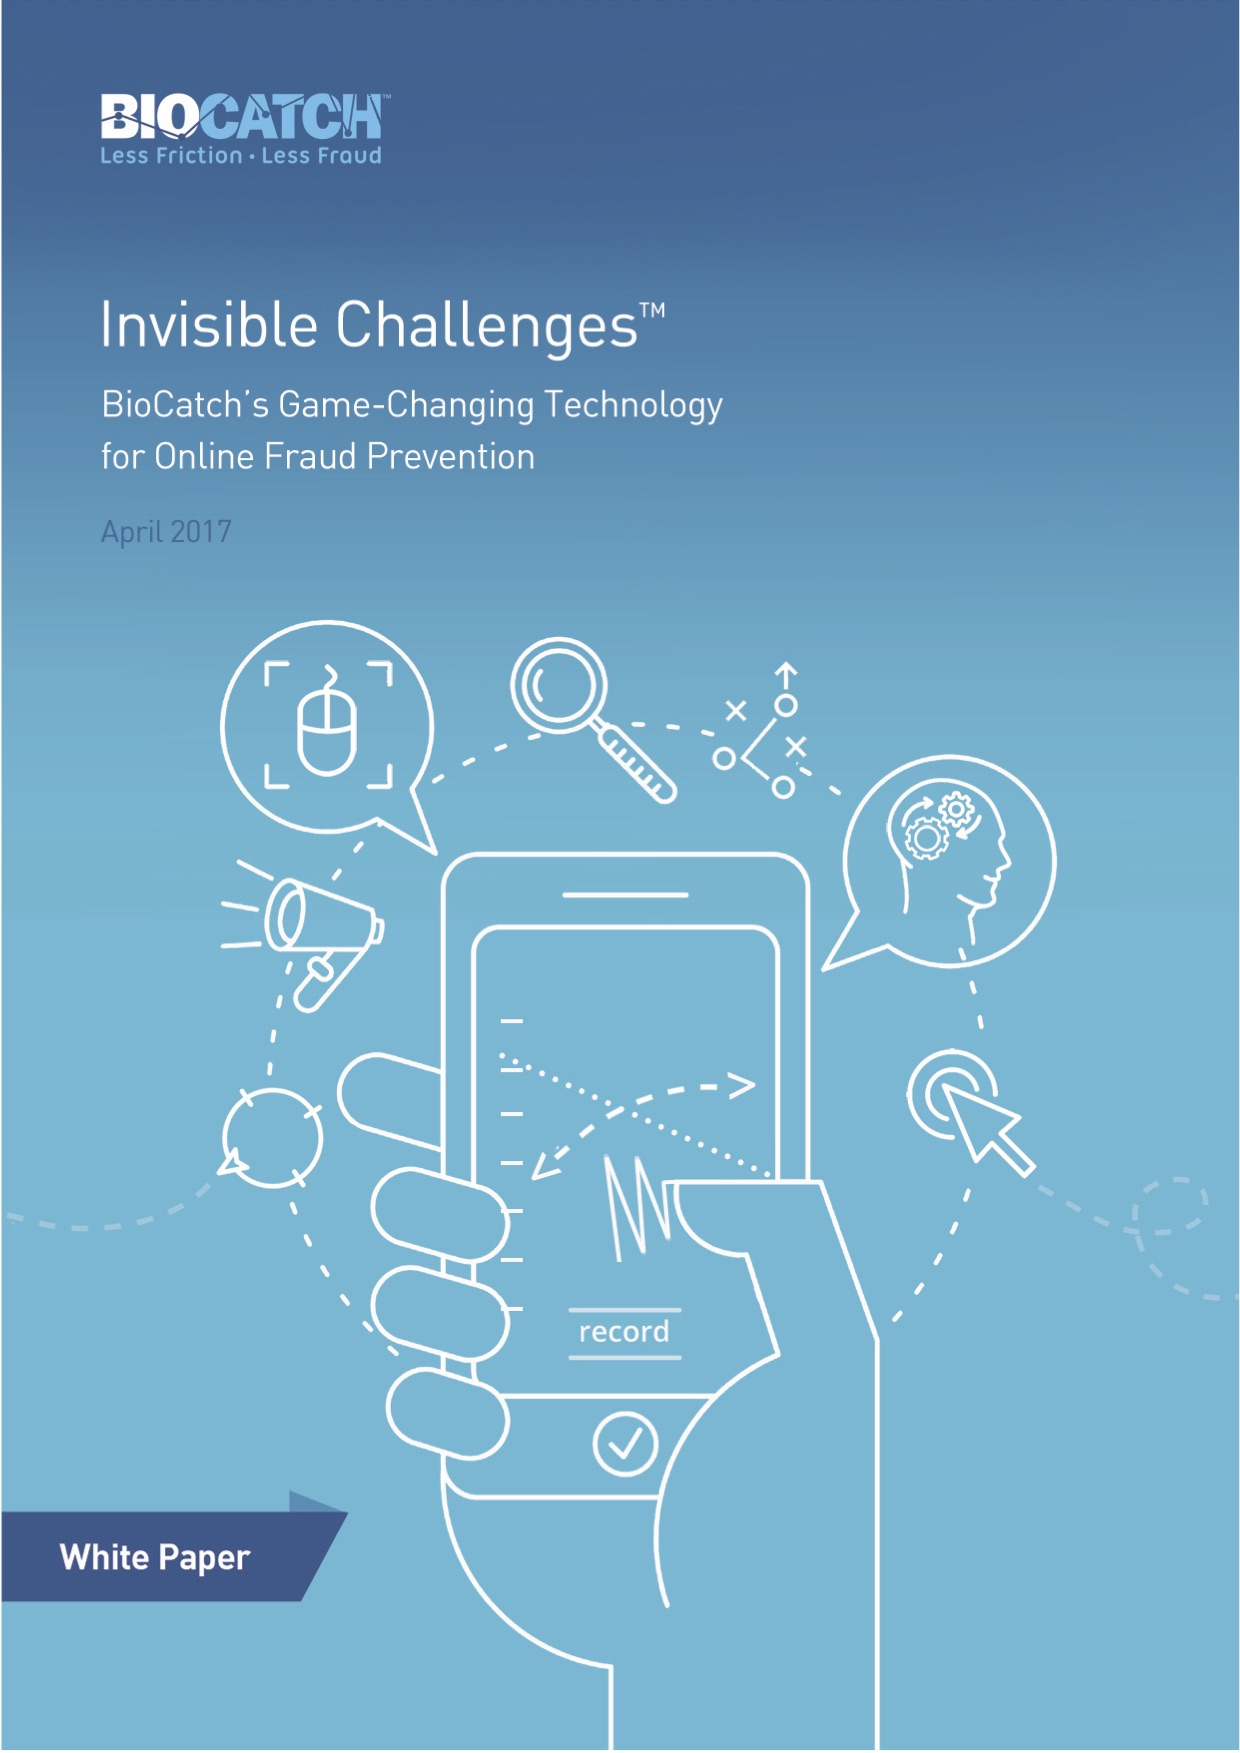 BioCatch_Invisible_Challenges_ FINAL-FINAL (23.4.17).jpg